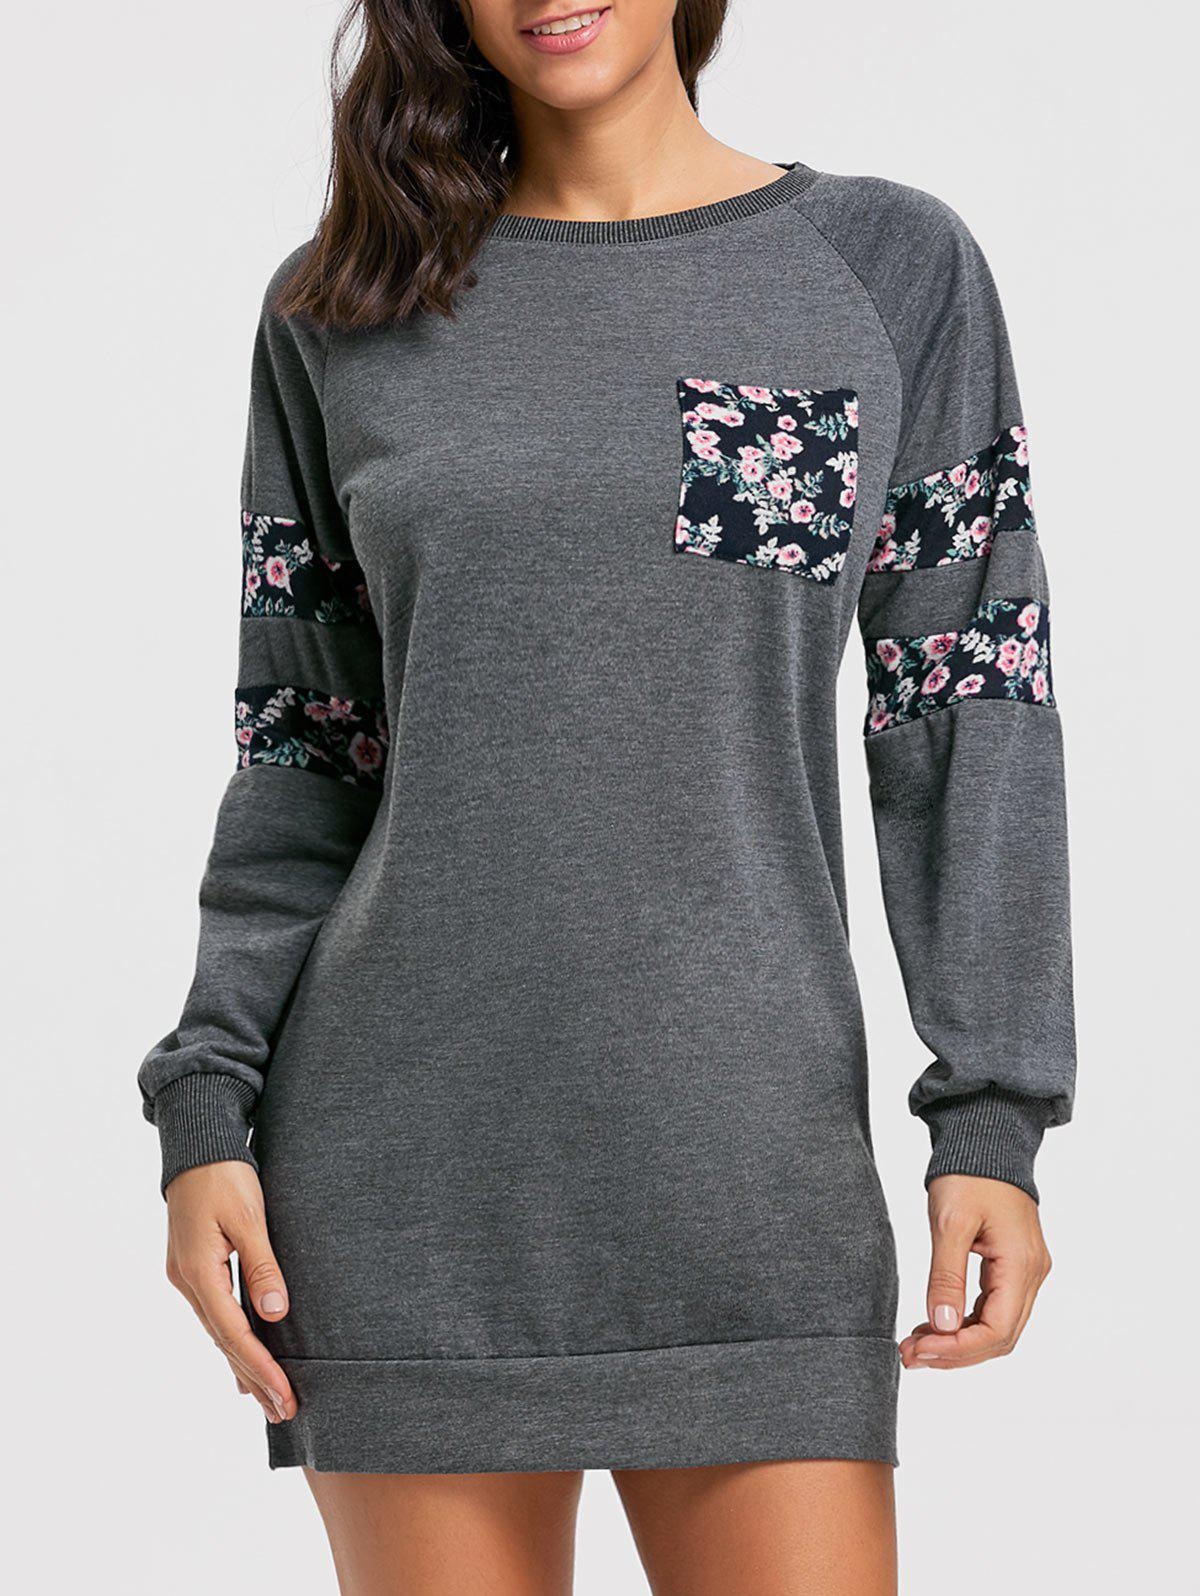 Crew Neck Floral Print Mini Sweatshirt Dress - DEEP GRAY M